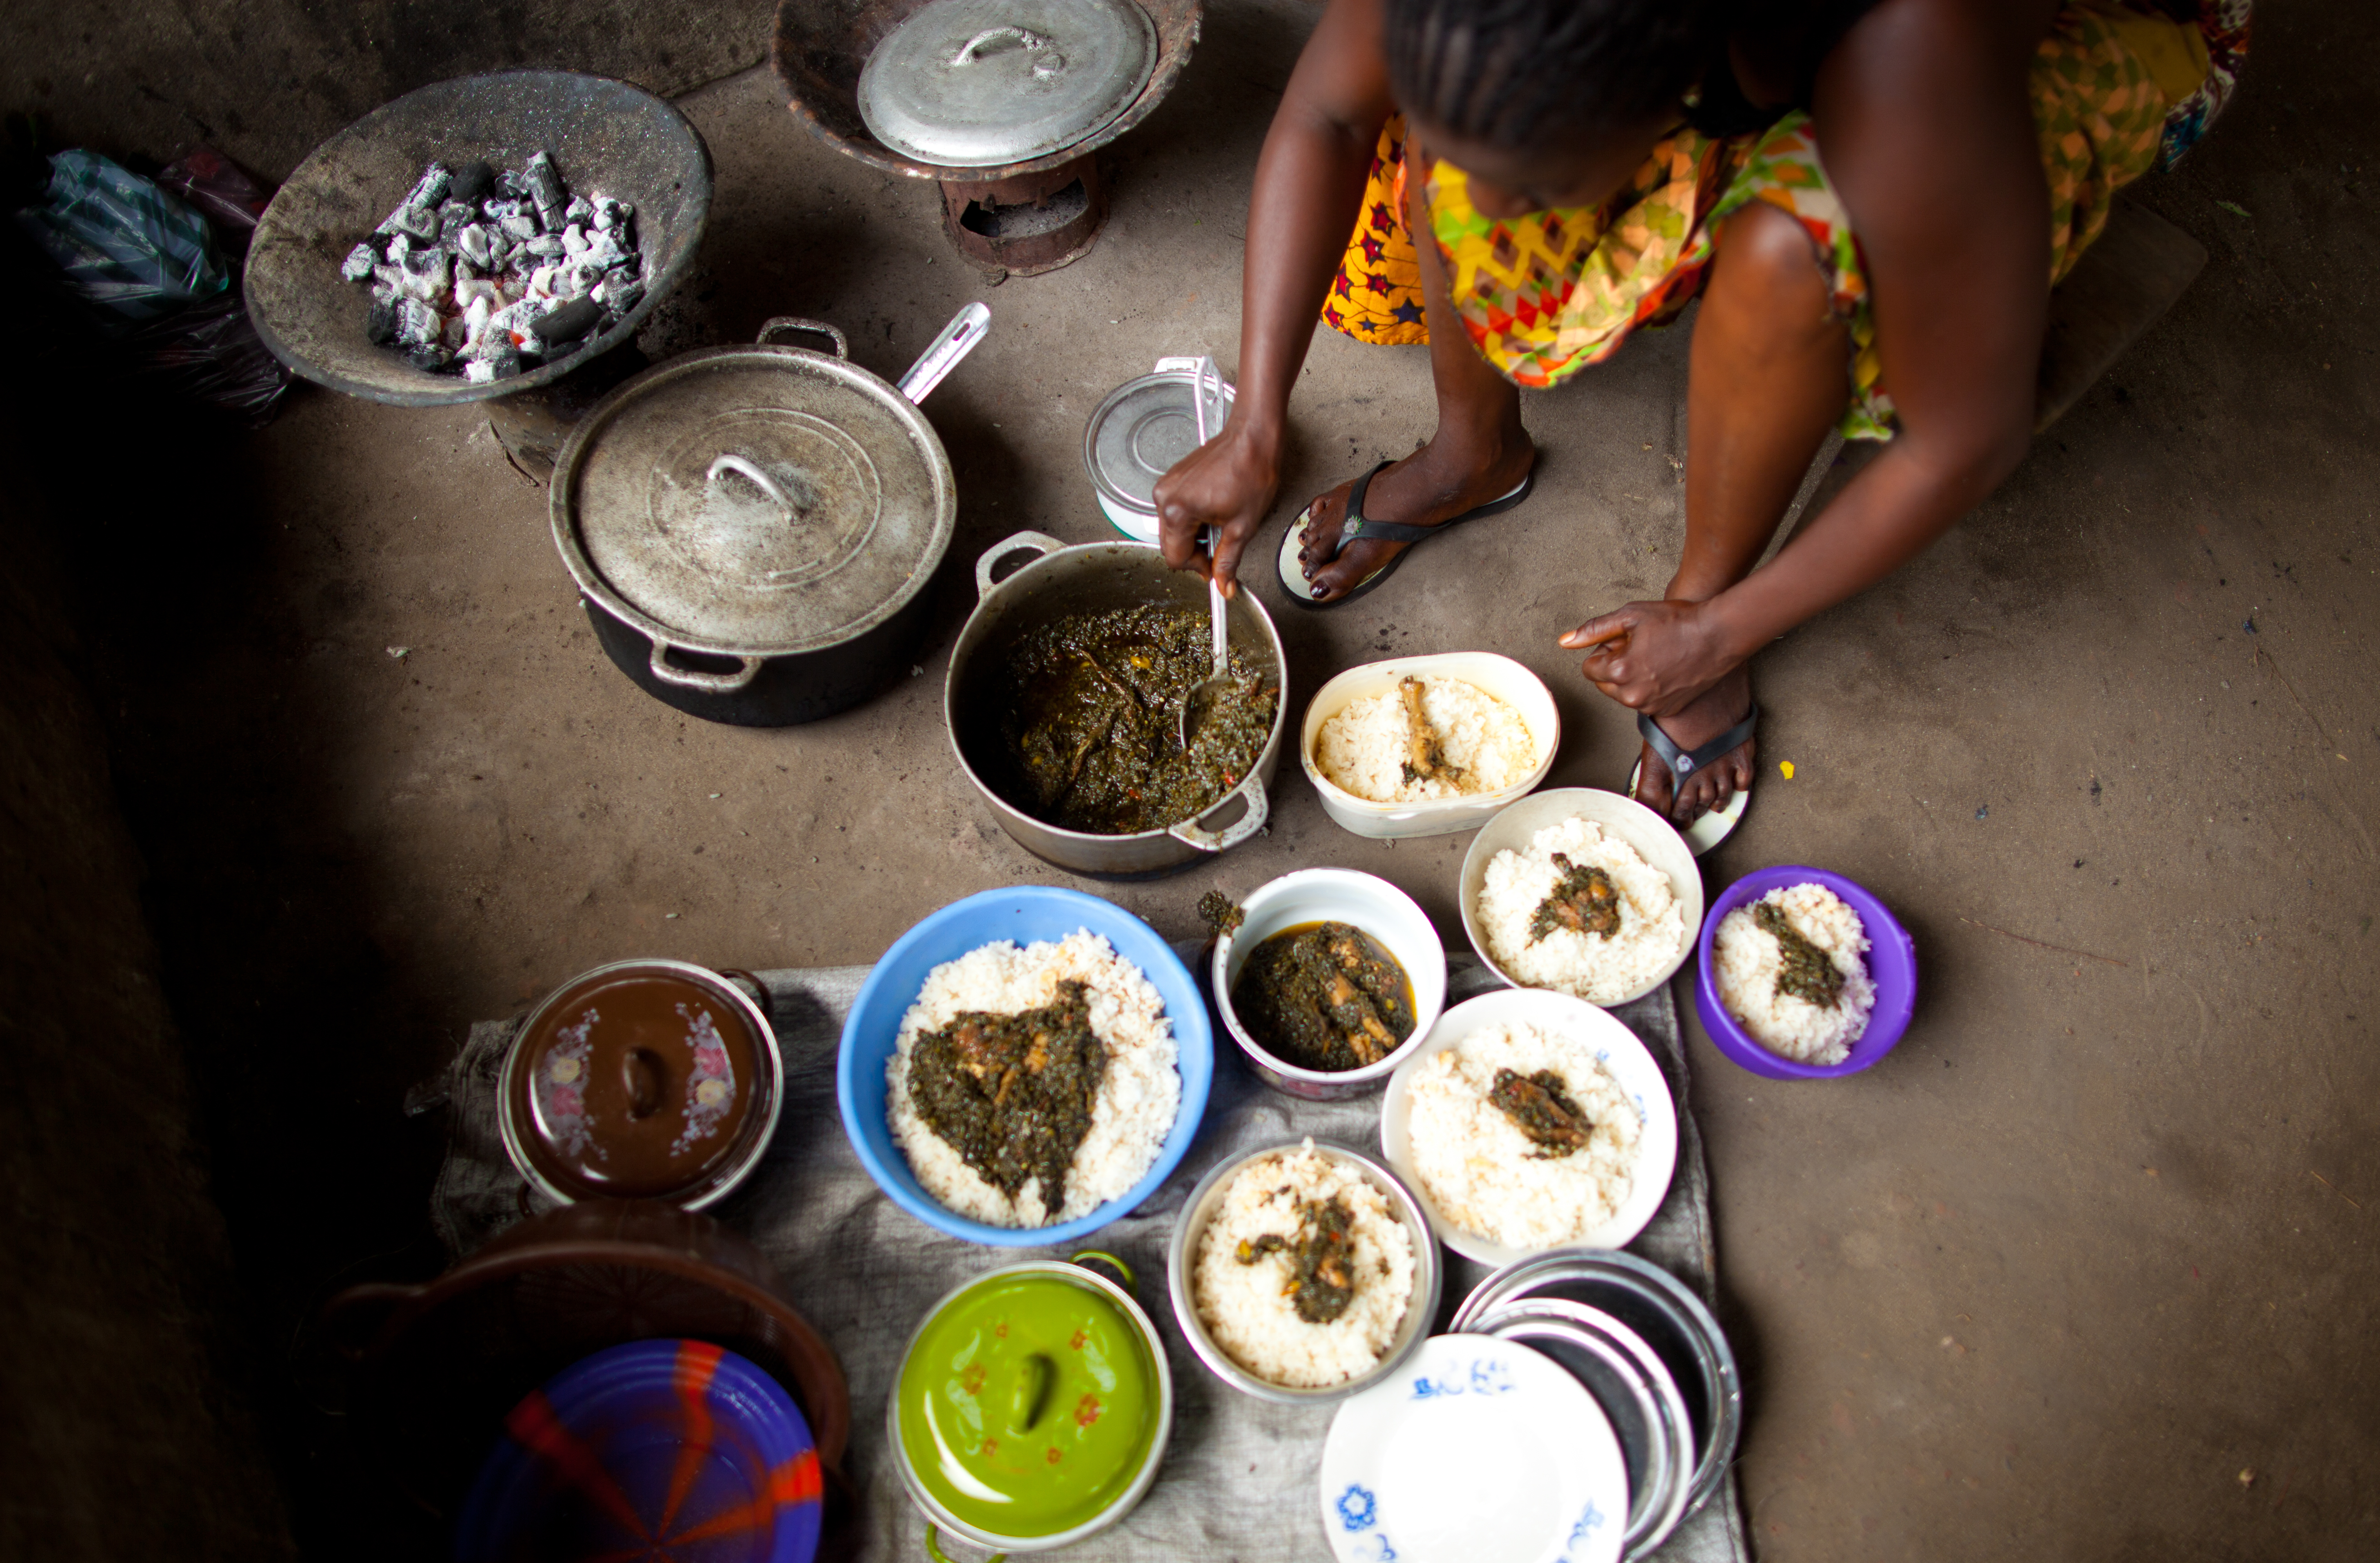 Adama Loyma dishes out meals for each of the children. Plates of food occupy the floor in front of her feet.